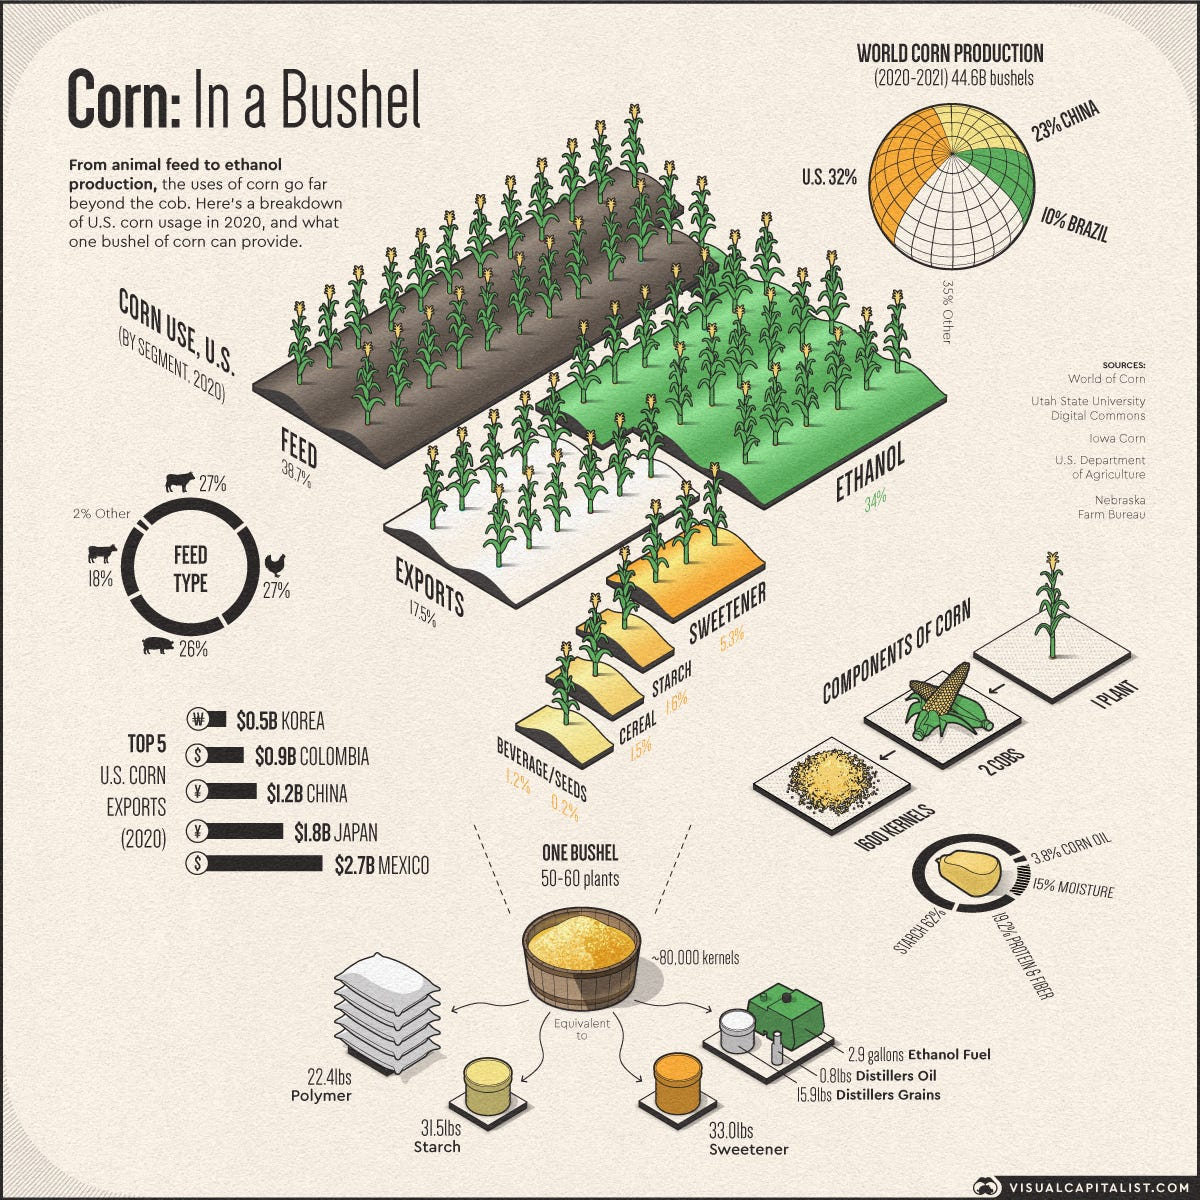 The uses of corn